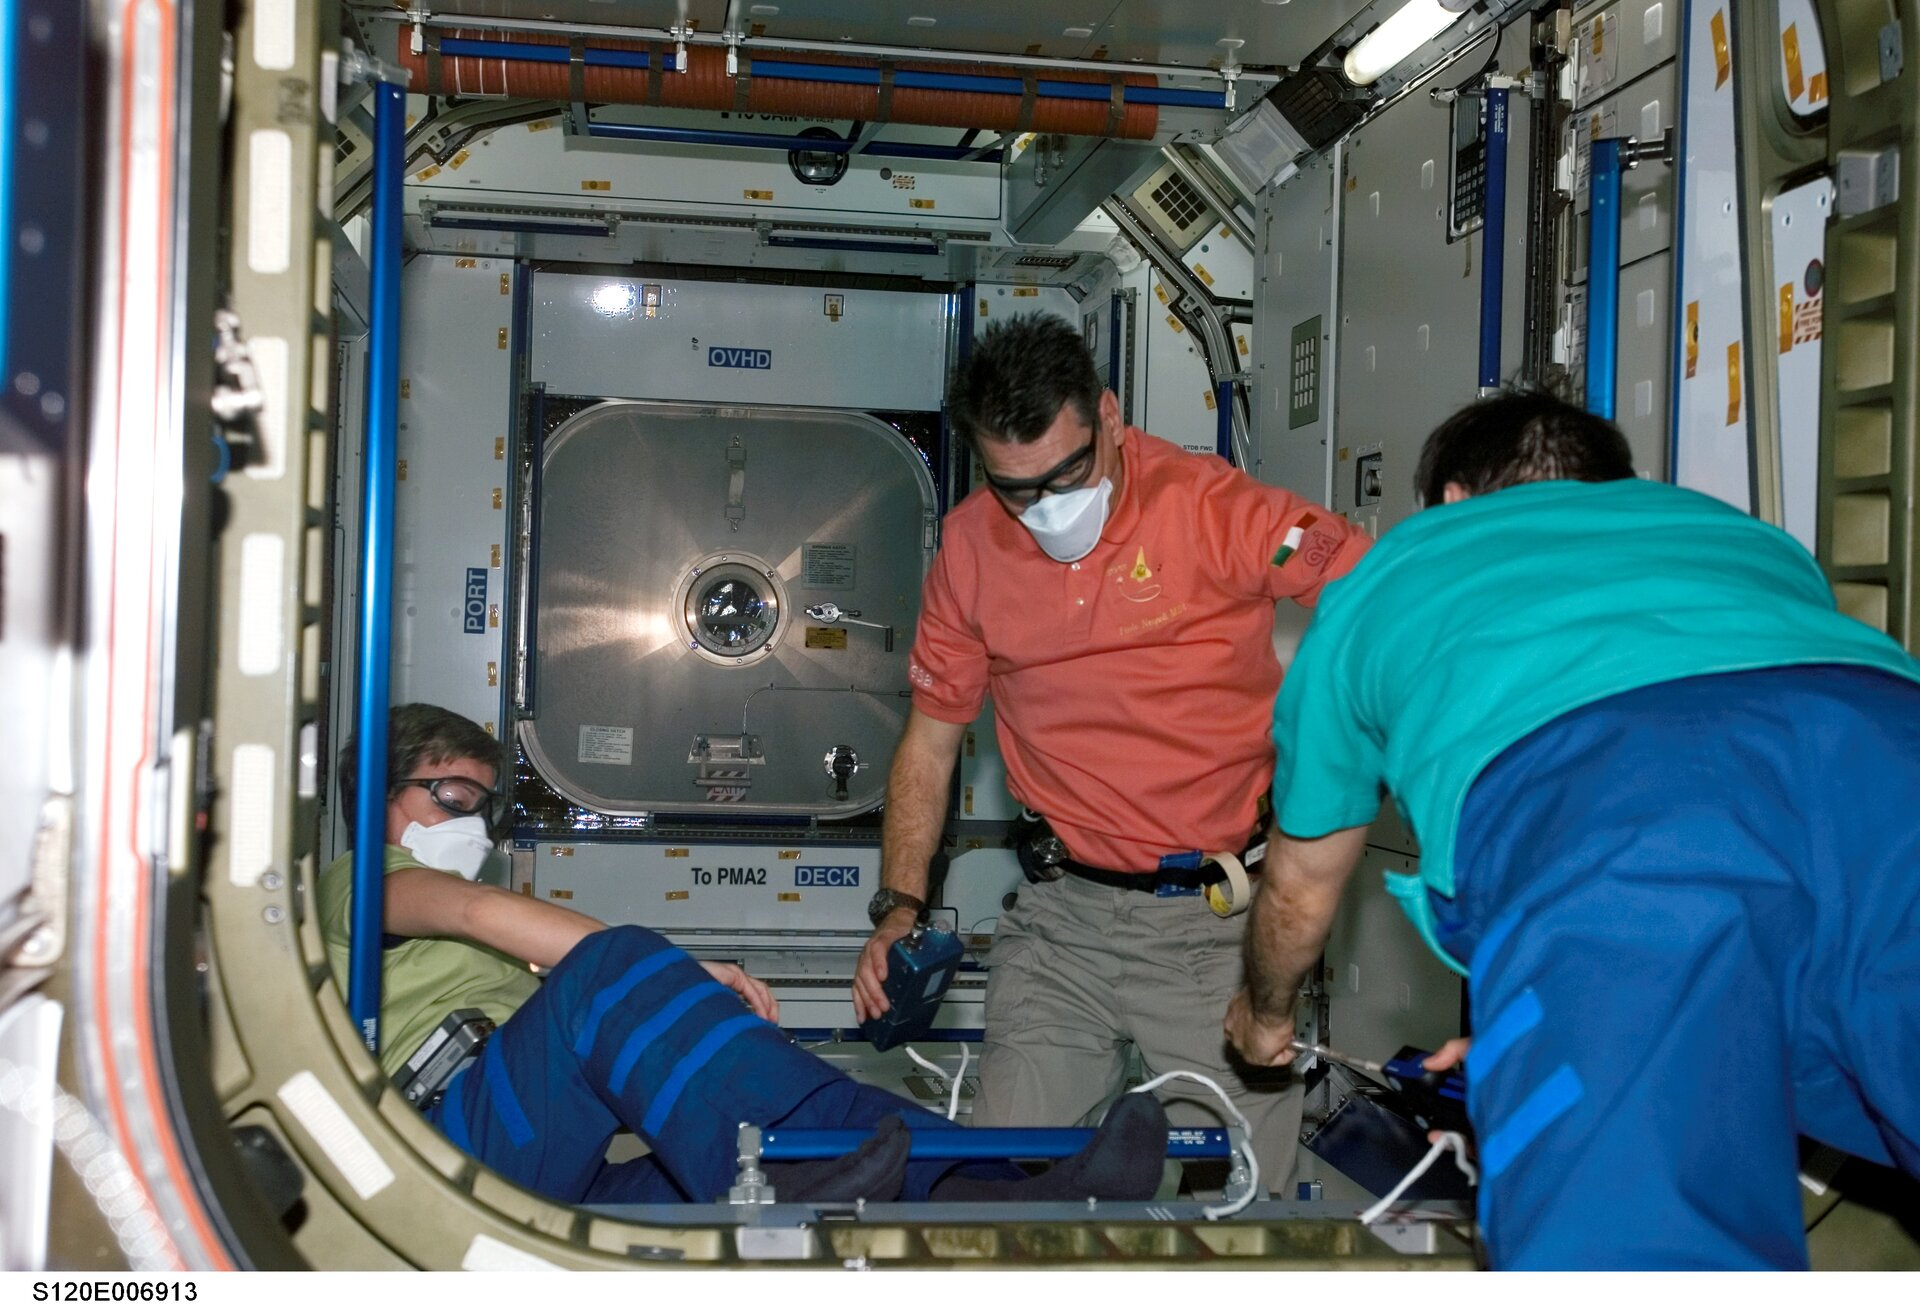 Nespoli and Whitson wore protective goggles and face masks to protect themselves in case of any loose flying objects inside the new module